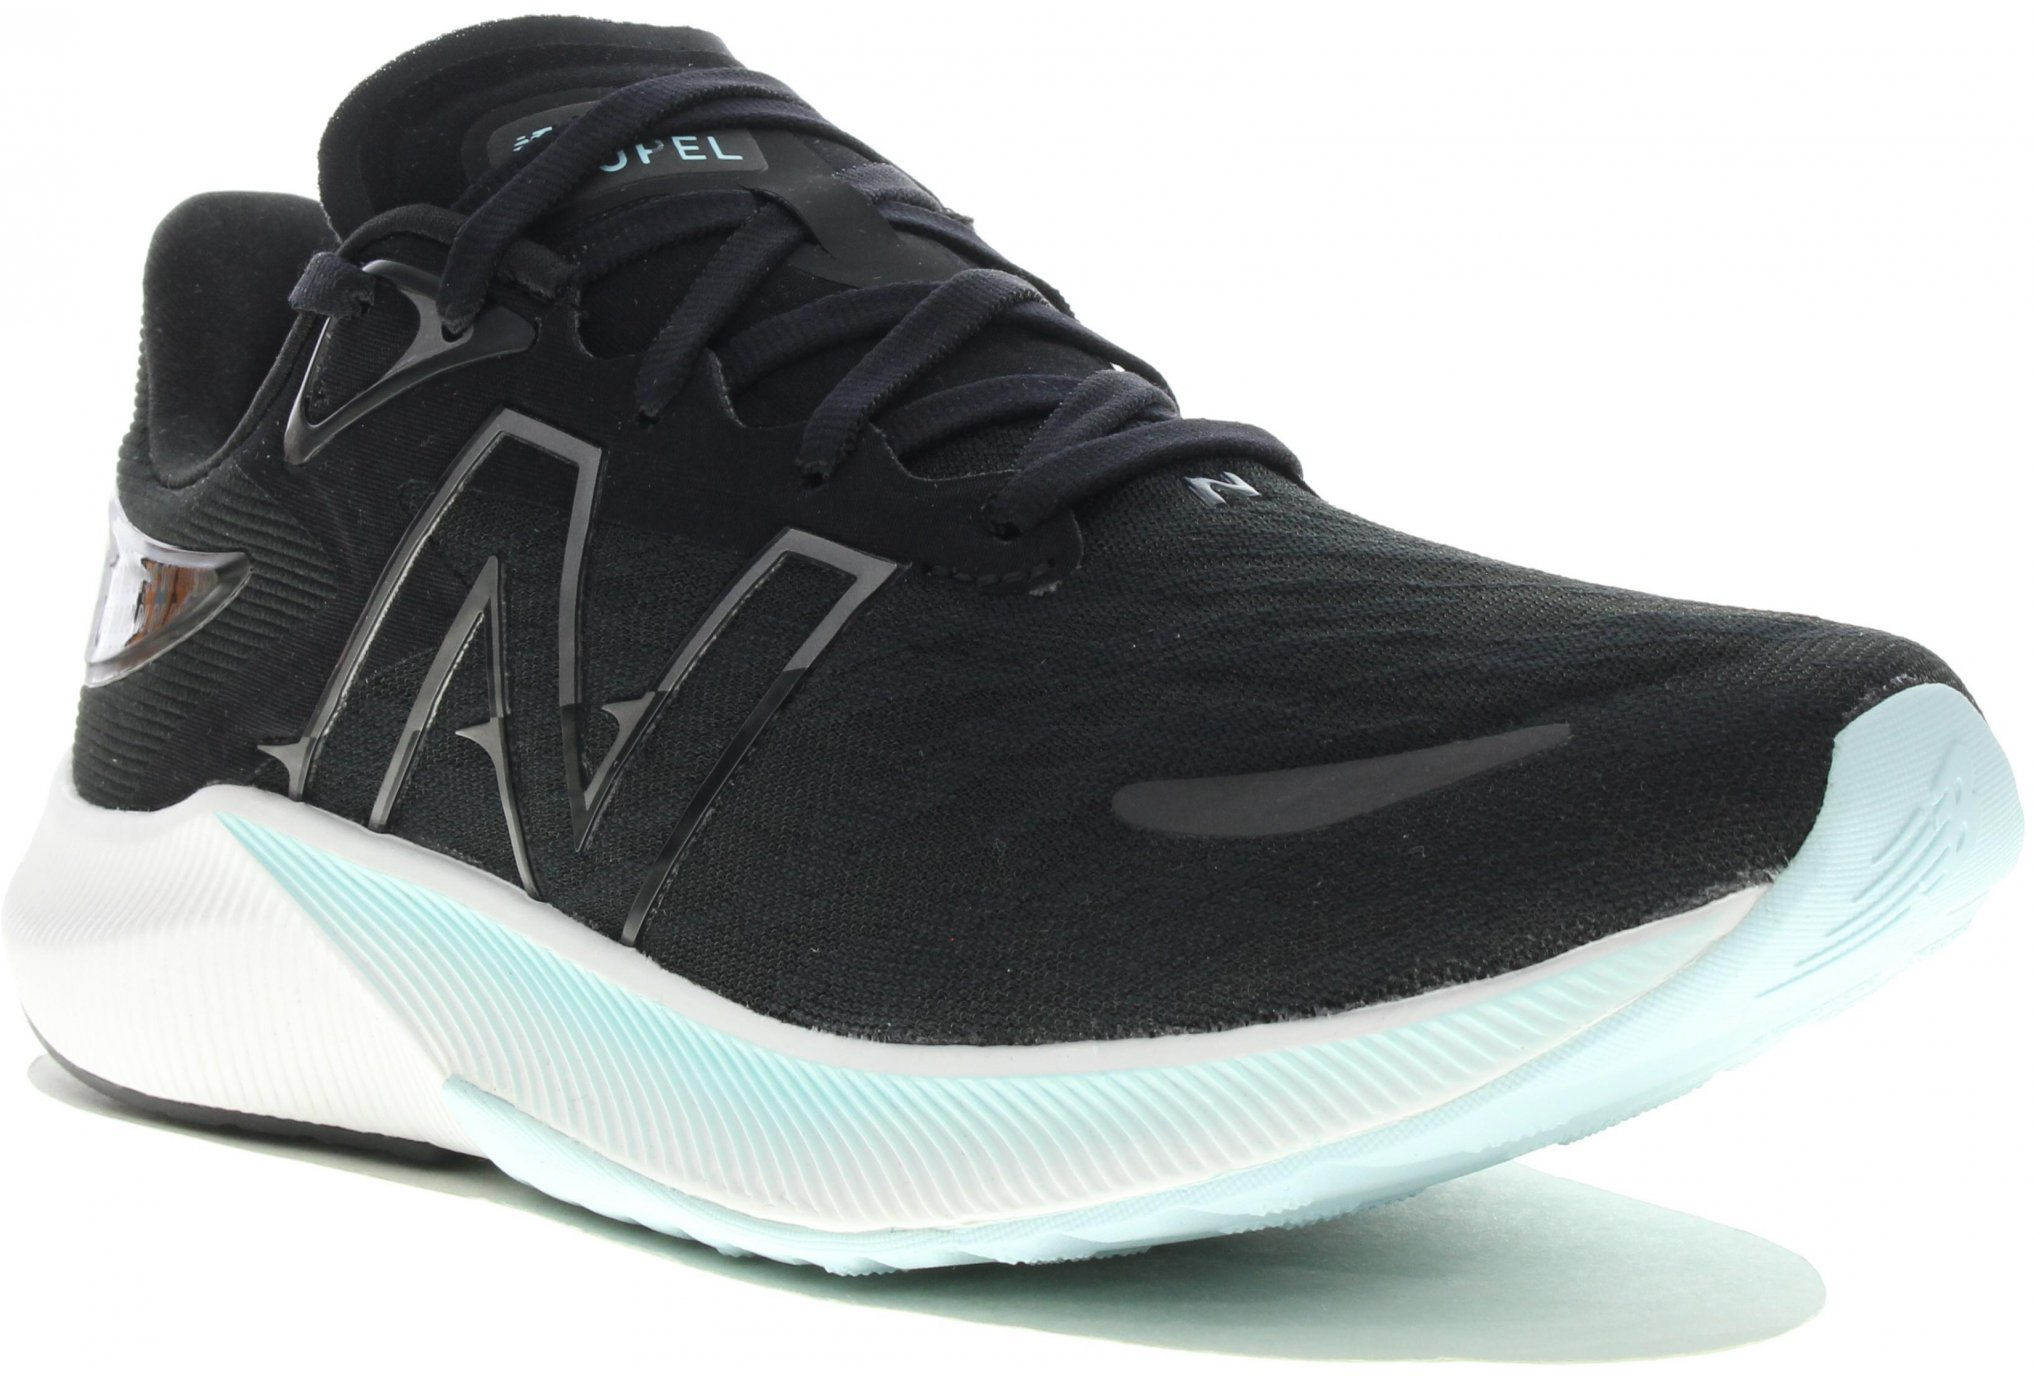 New Balance FuellCell Propel V3 W Chaussures running femme